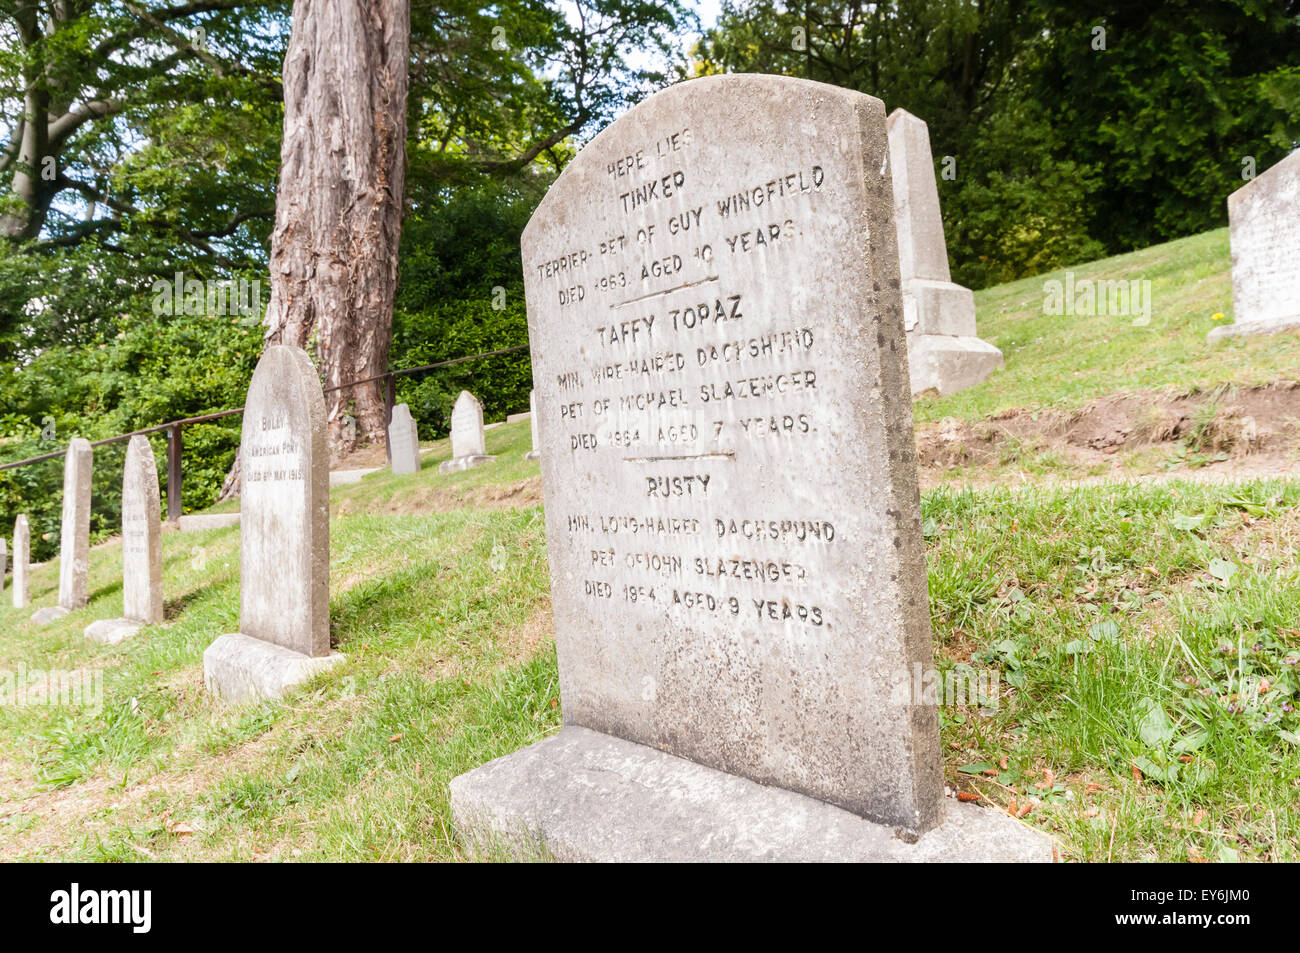 Gravestones for pet dogs in a pet cemetery - Stock Image